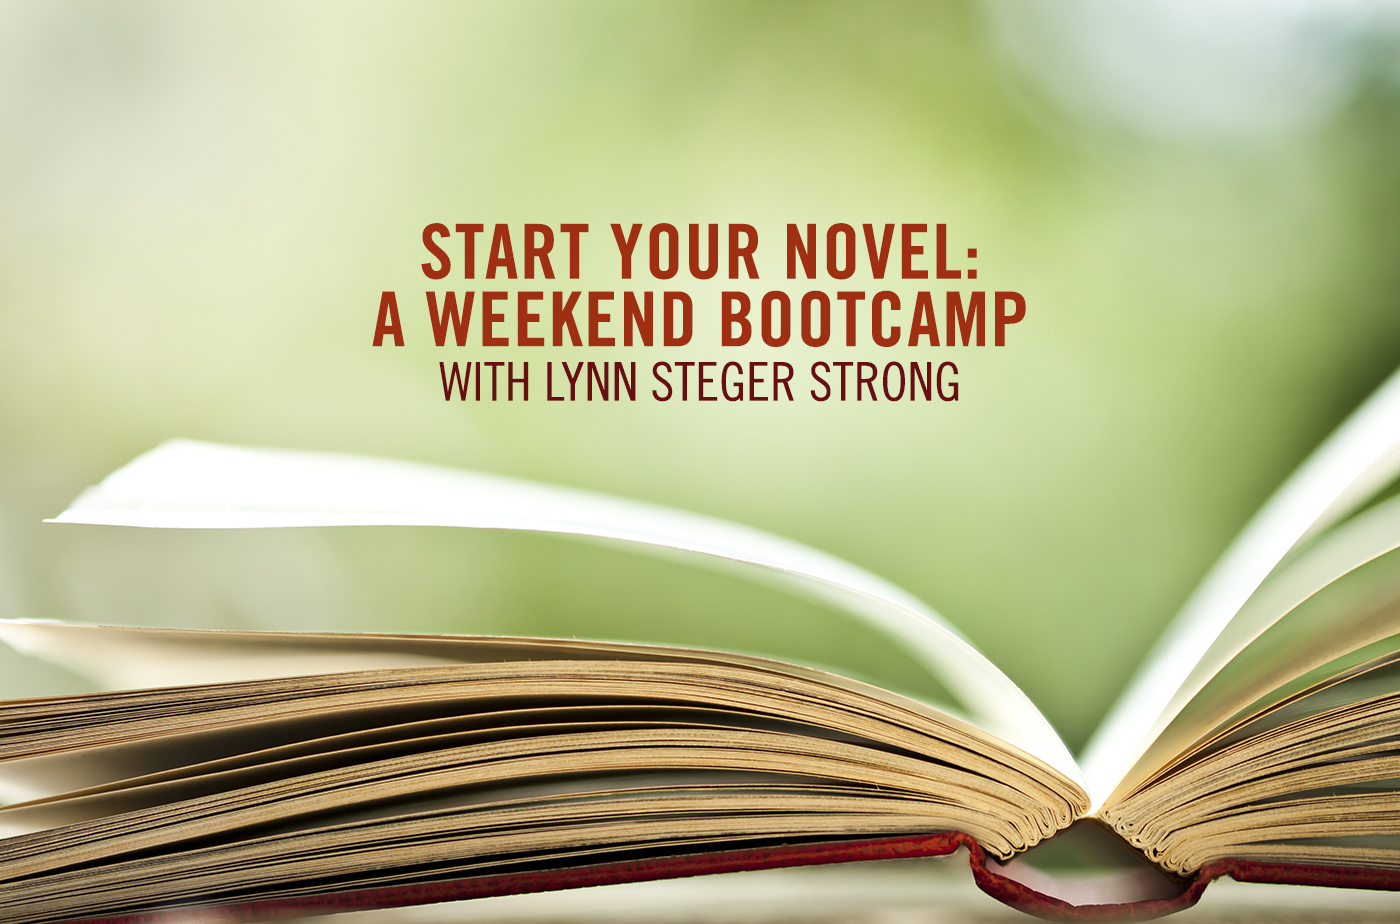 Catapult  classes: Lynn Steger Strong, Start Your Novel: A Weekend Bootcamp, Fiction, Bootcamp